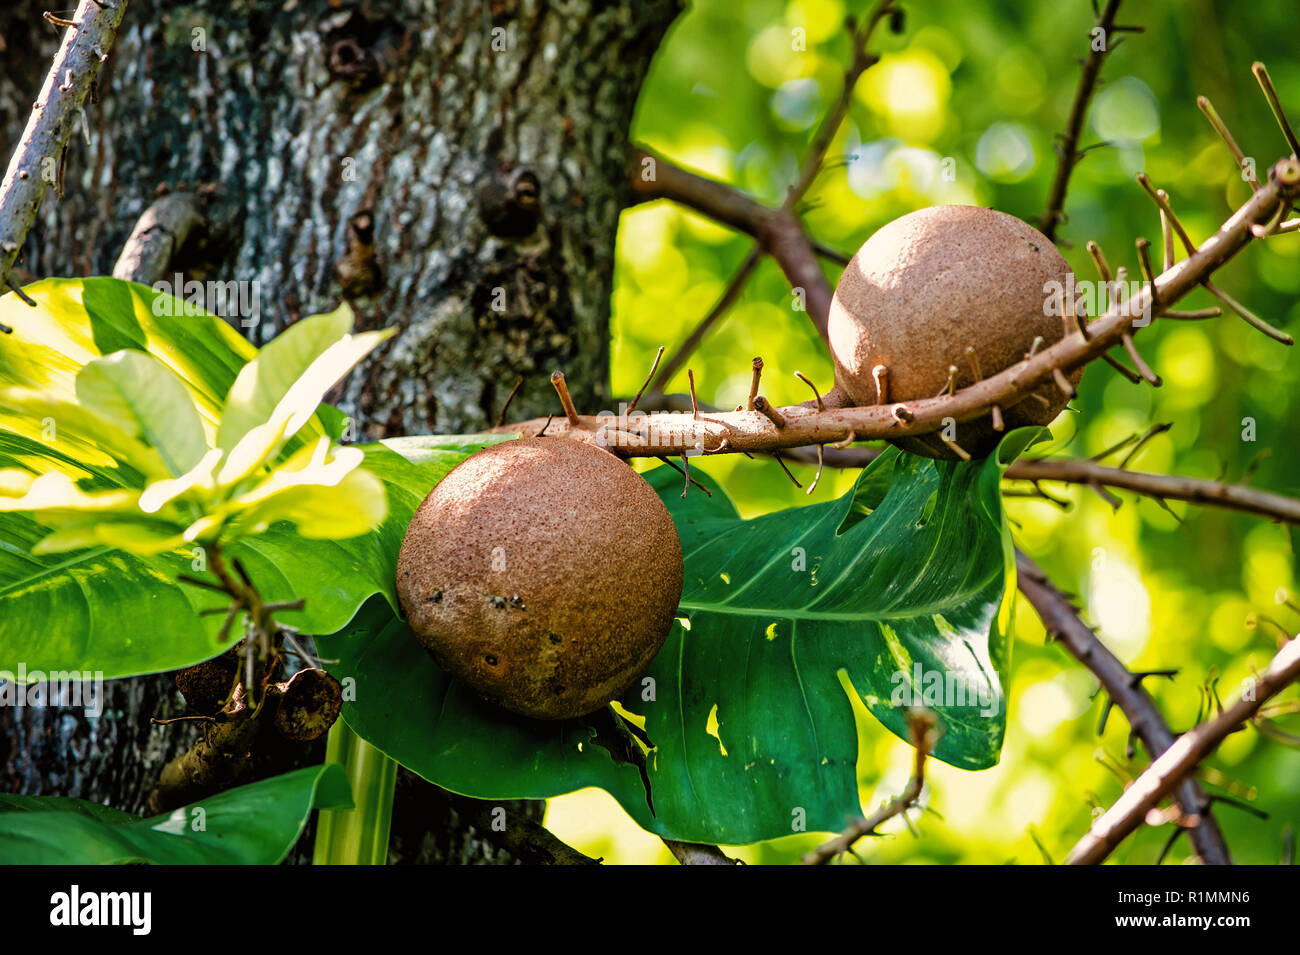 Fruits on cannonbal tree with green leaves in rainforest of Honduras on sunny day on natural background. Wildlife and nature. Eco park concept. - Stock Image